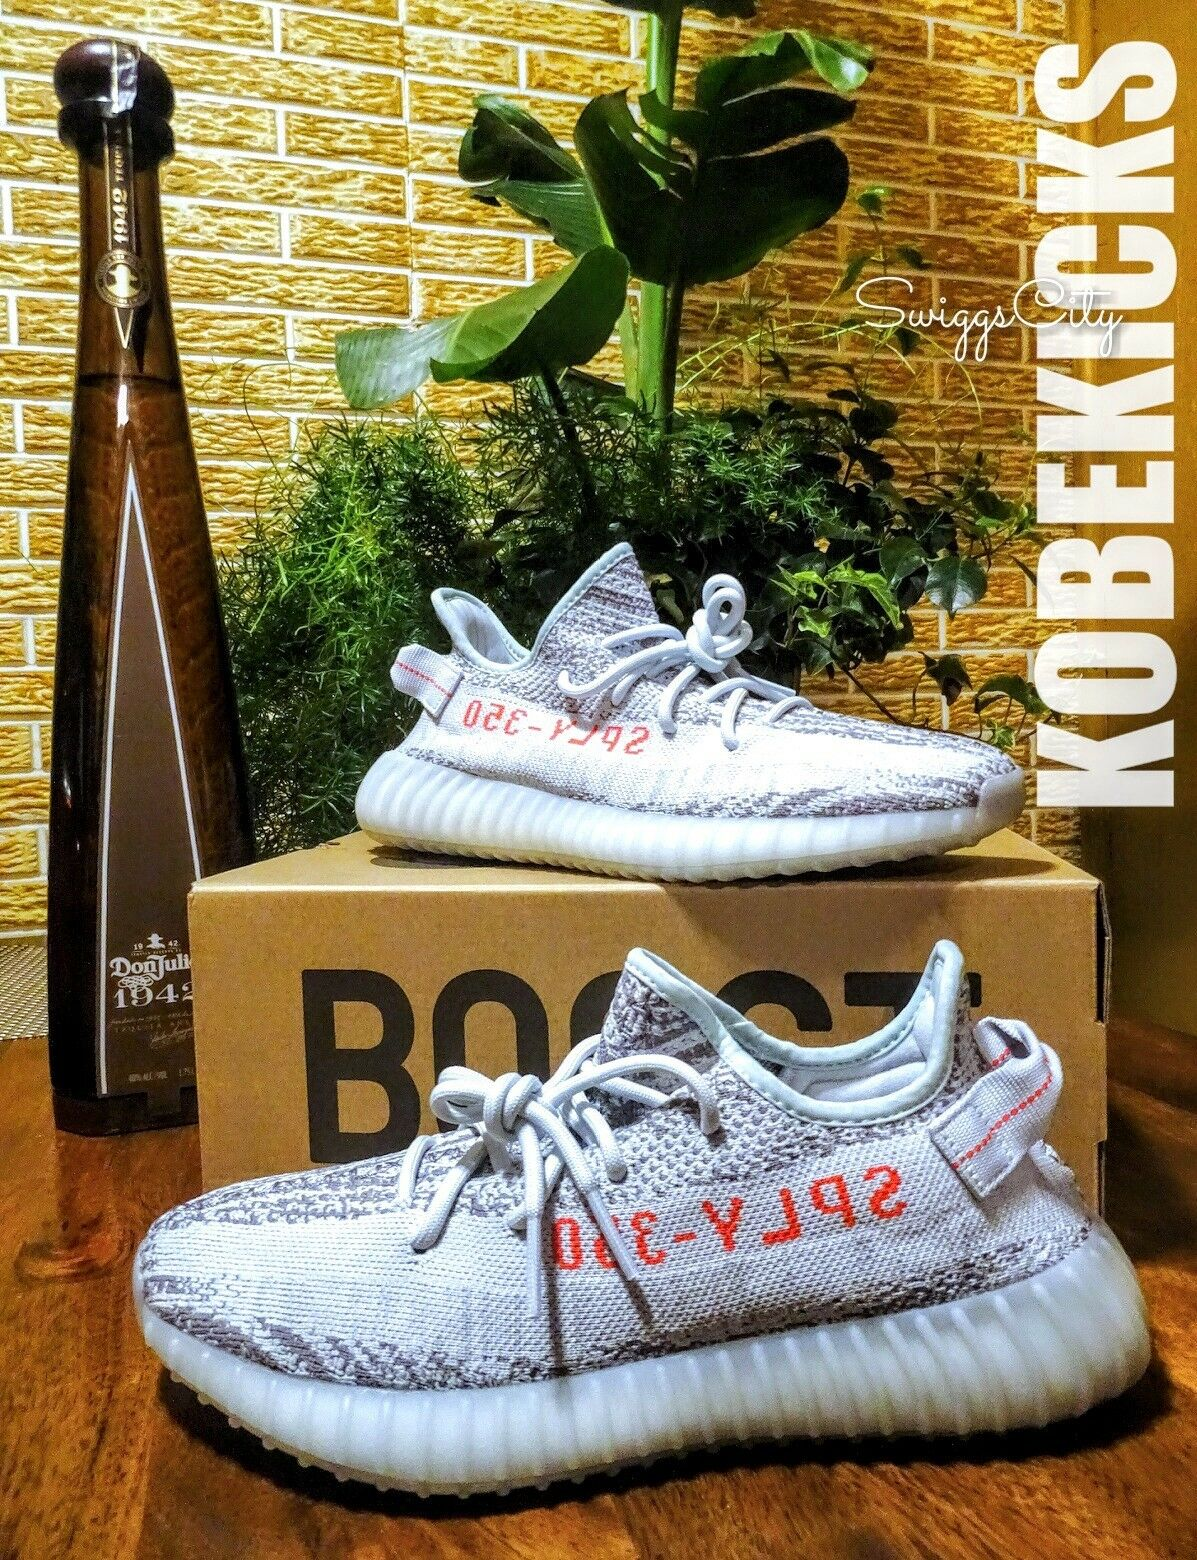 YEEZY 350 BOOST blueE TINT V2 KANYE WEST CONFIRMED ORDER SIZE 10 BRAND NEW RARE